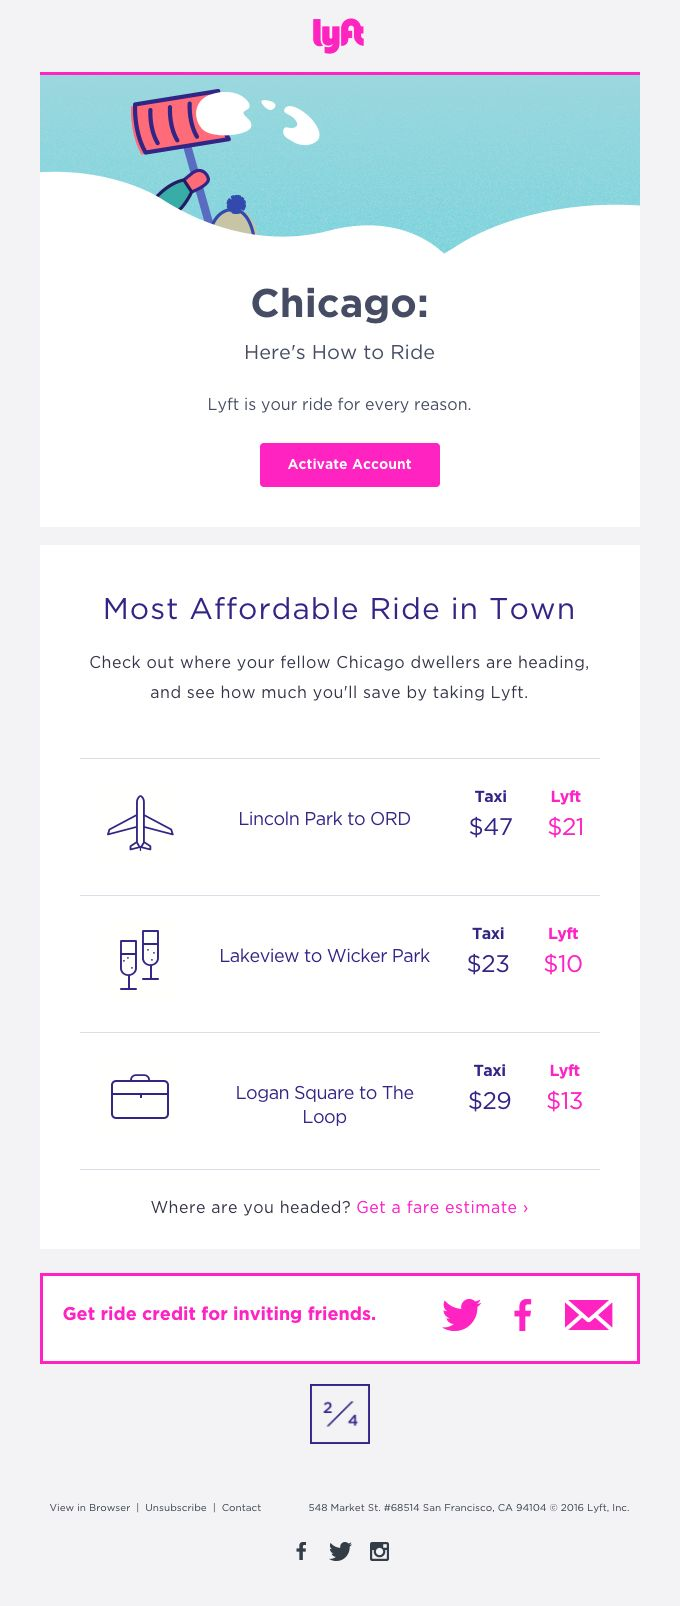 Tips on Getting Around